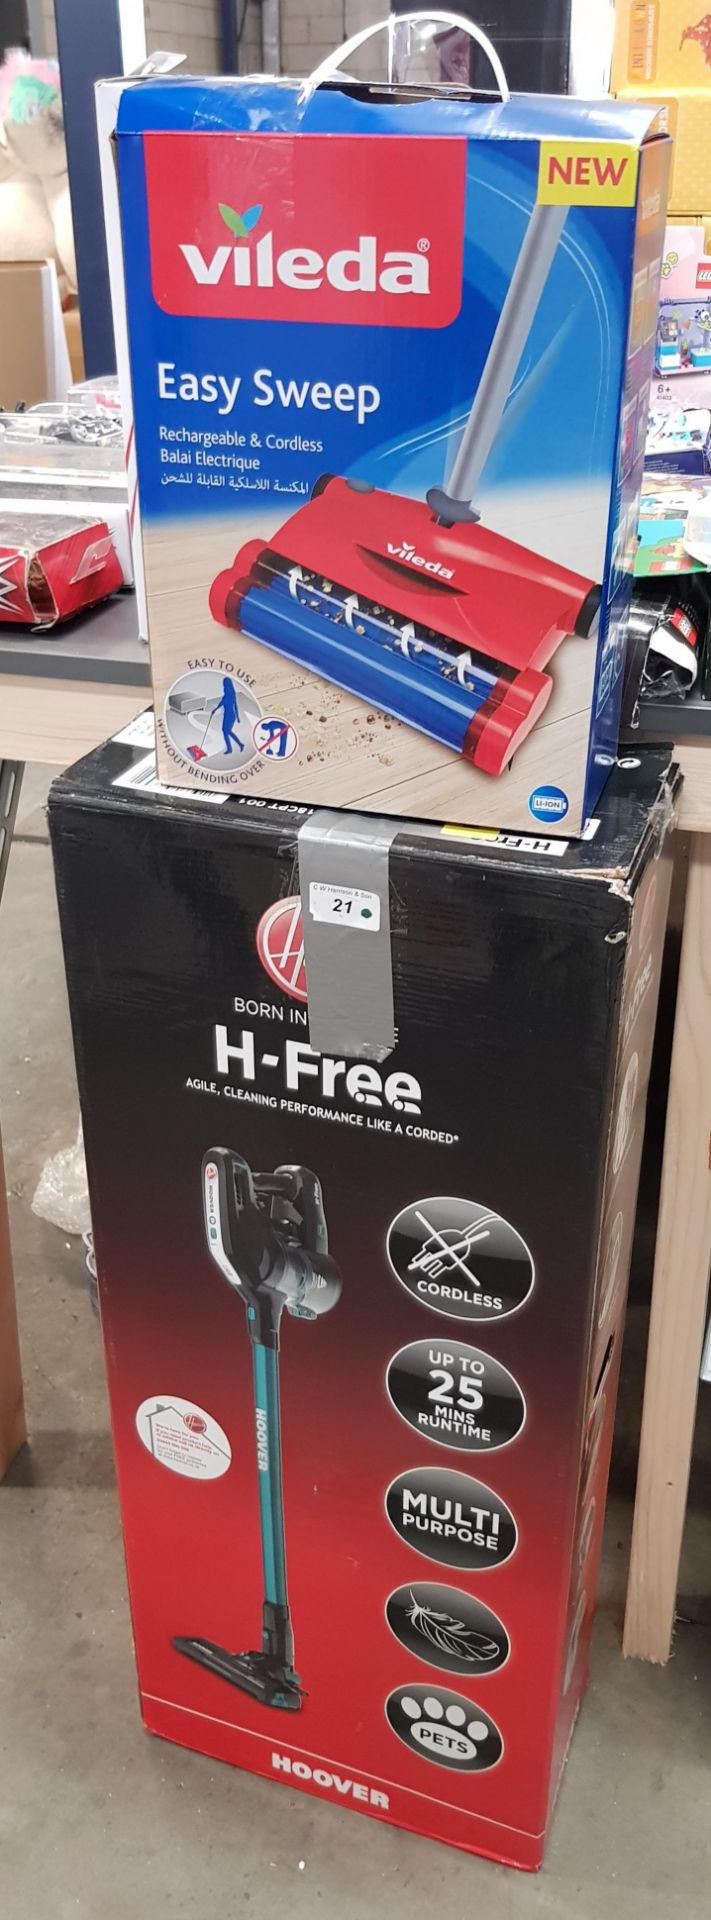 Lot 21 - 2 ITEMS - 1 x HOOVER H-FREE MULTI PURPOSE PETS CORDLESS & 1 x VILEDA EASY SWEEP